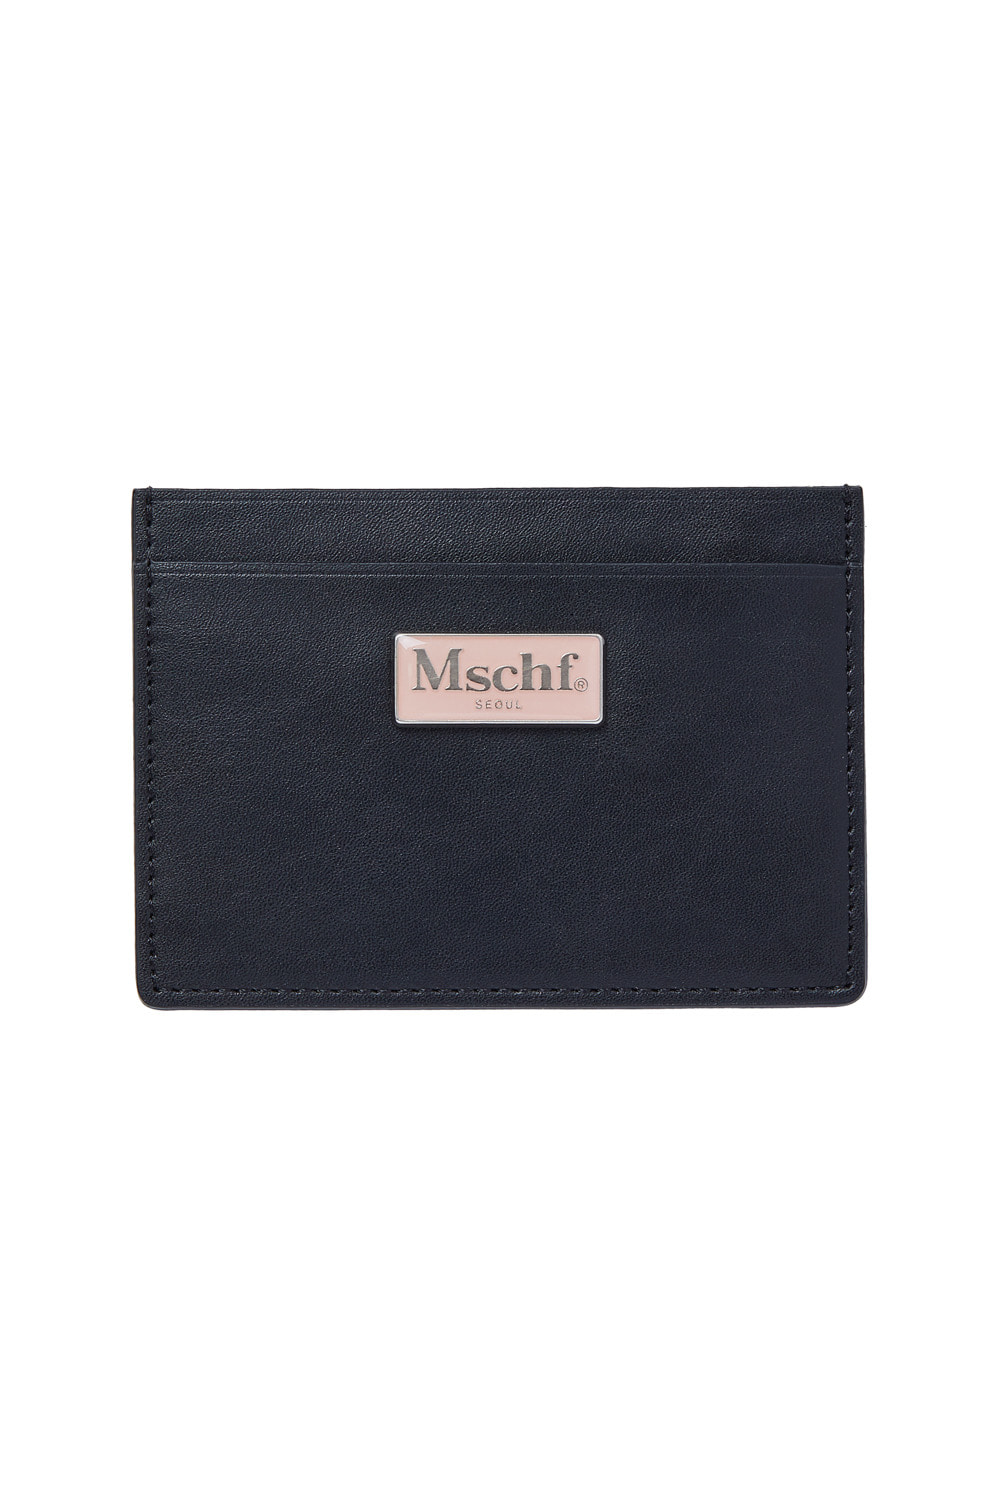 MINI CARD HOLDER_black